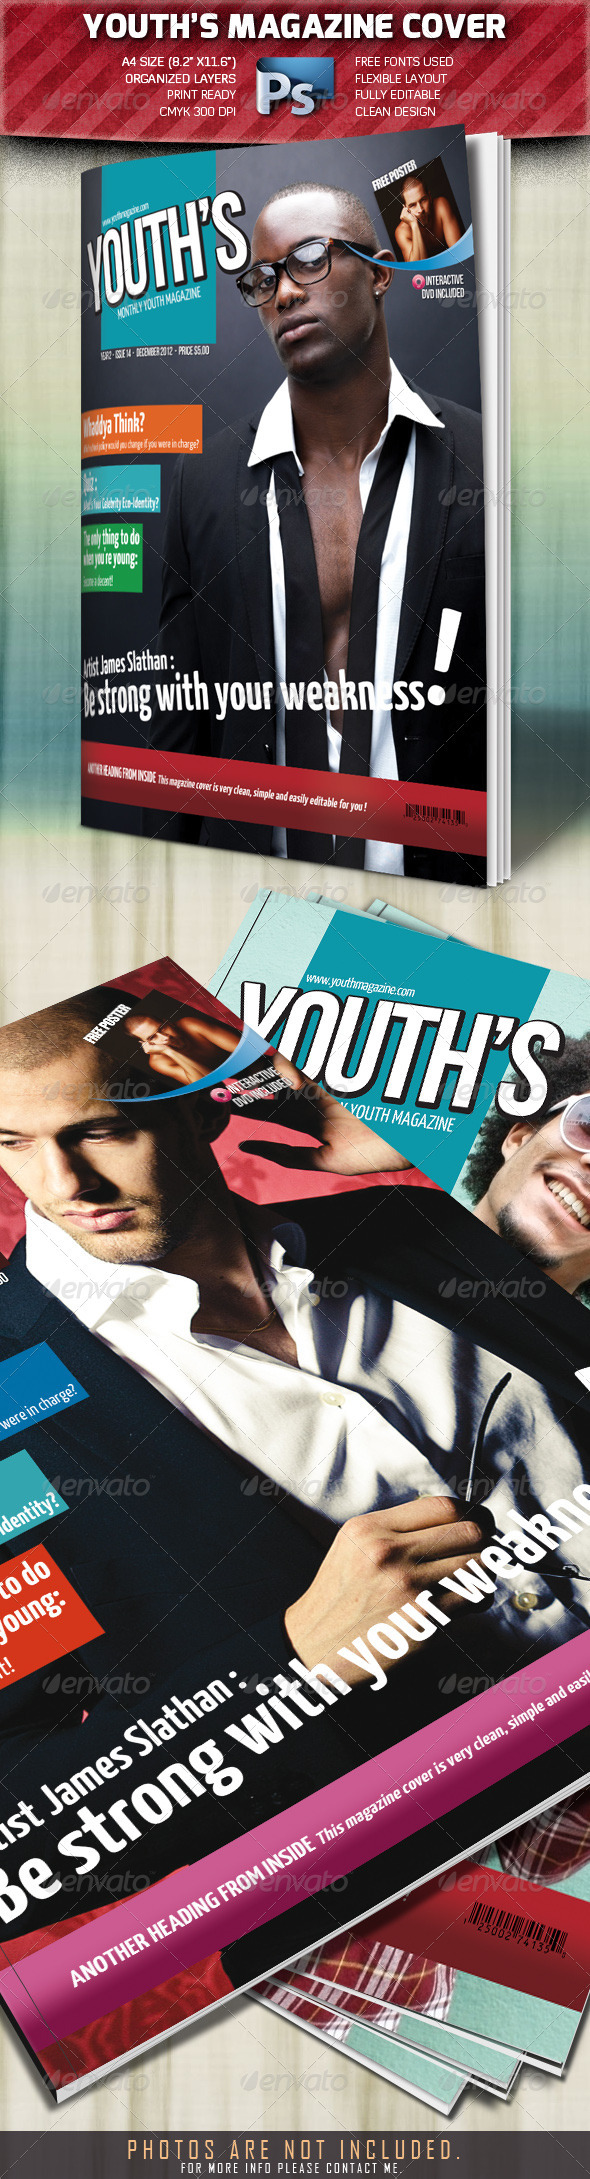 Youth's Magazine Cover - Magazines Print Templates